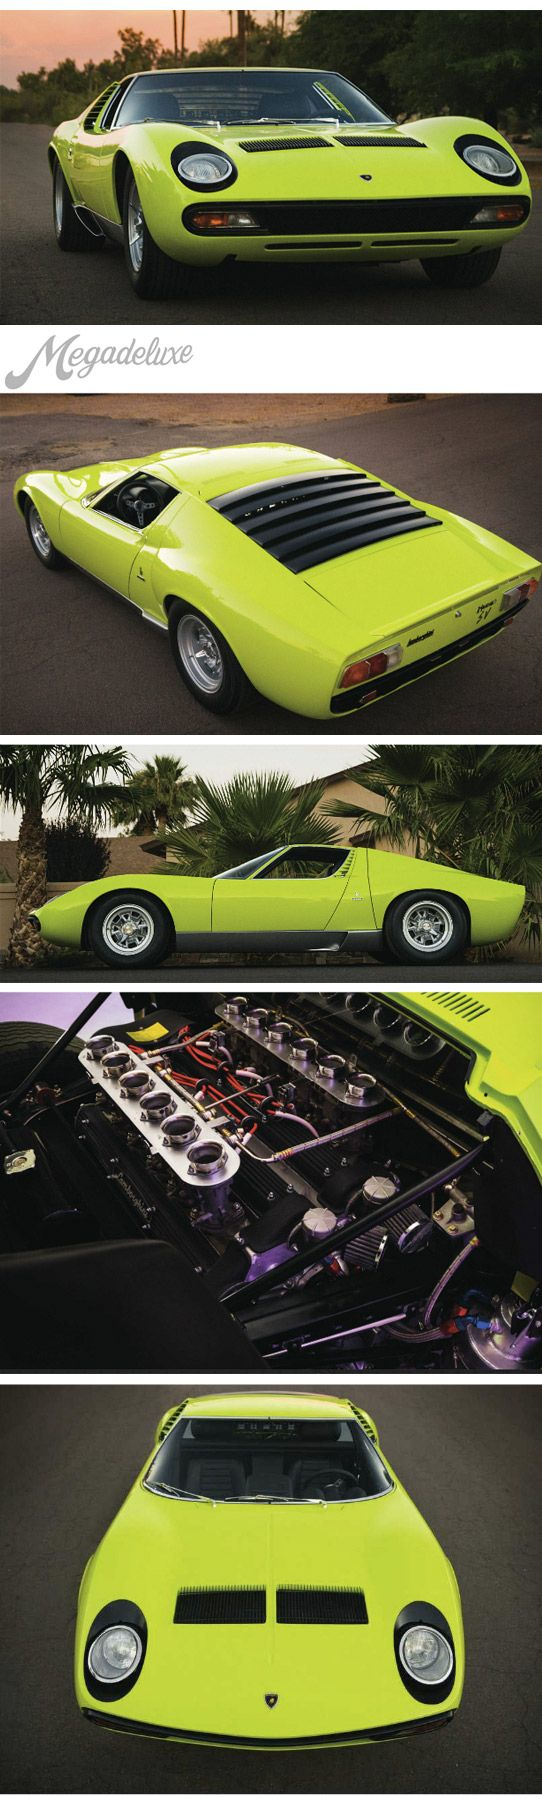 1967 LAMBORGHINI MIURA P400 SV CONVERSION https://www.amazon.co.uk/Baby-Car-Mirror-Shatterproof-Installation/dp/B06XHG6SSY/ref=sr_1_2?ie=UTF8&qid=1499074433&sr=8-2&keywords=Kingseye